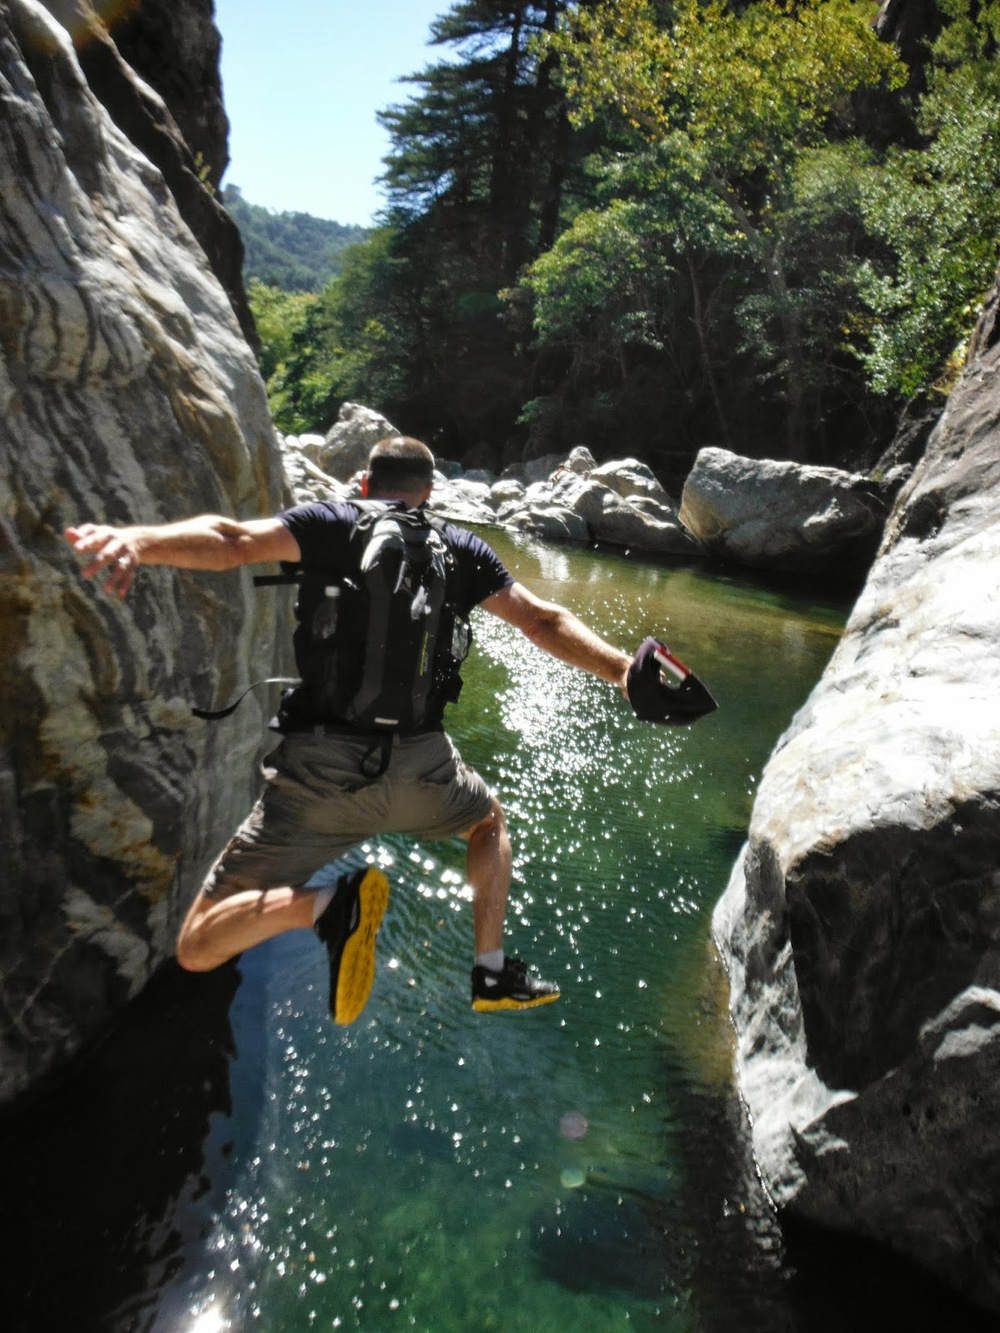 A very awesome google image of what its like to jump off the giant rock